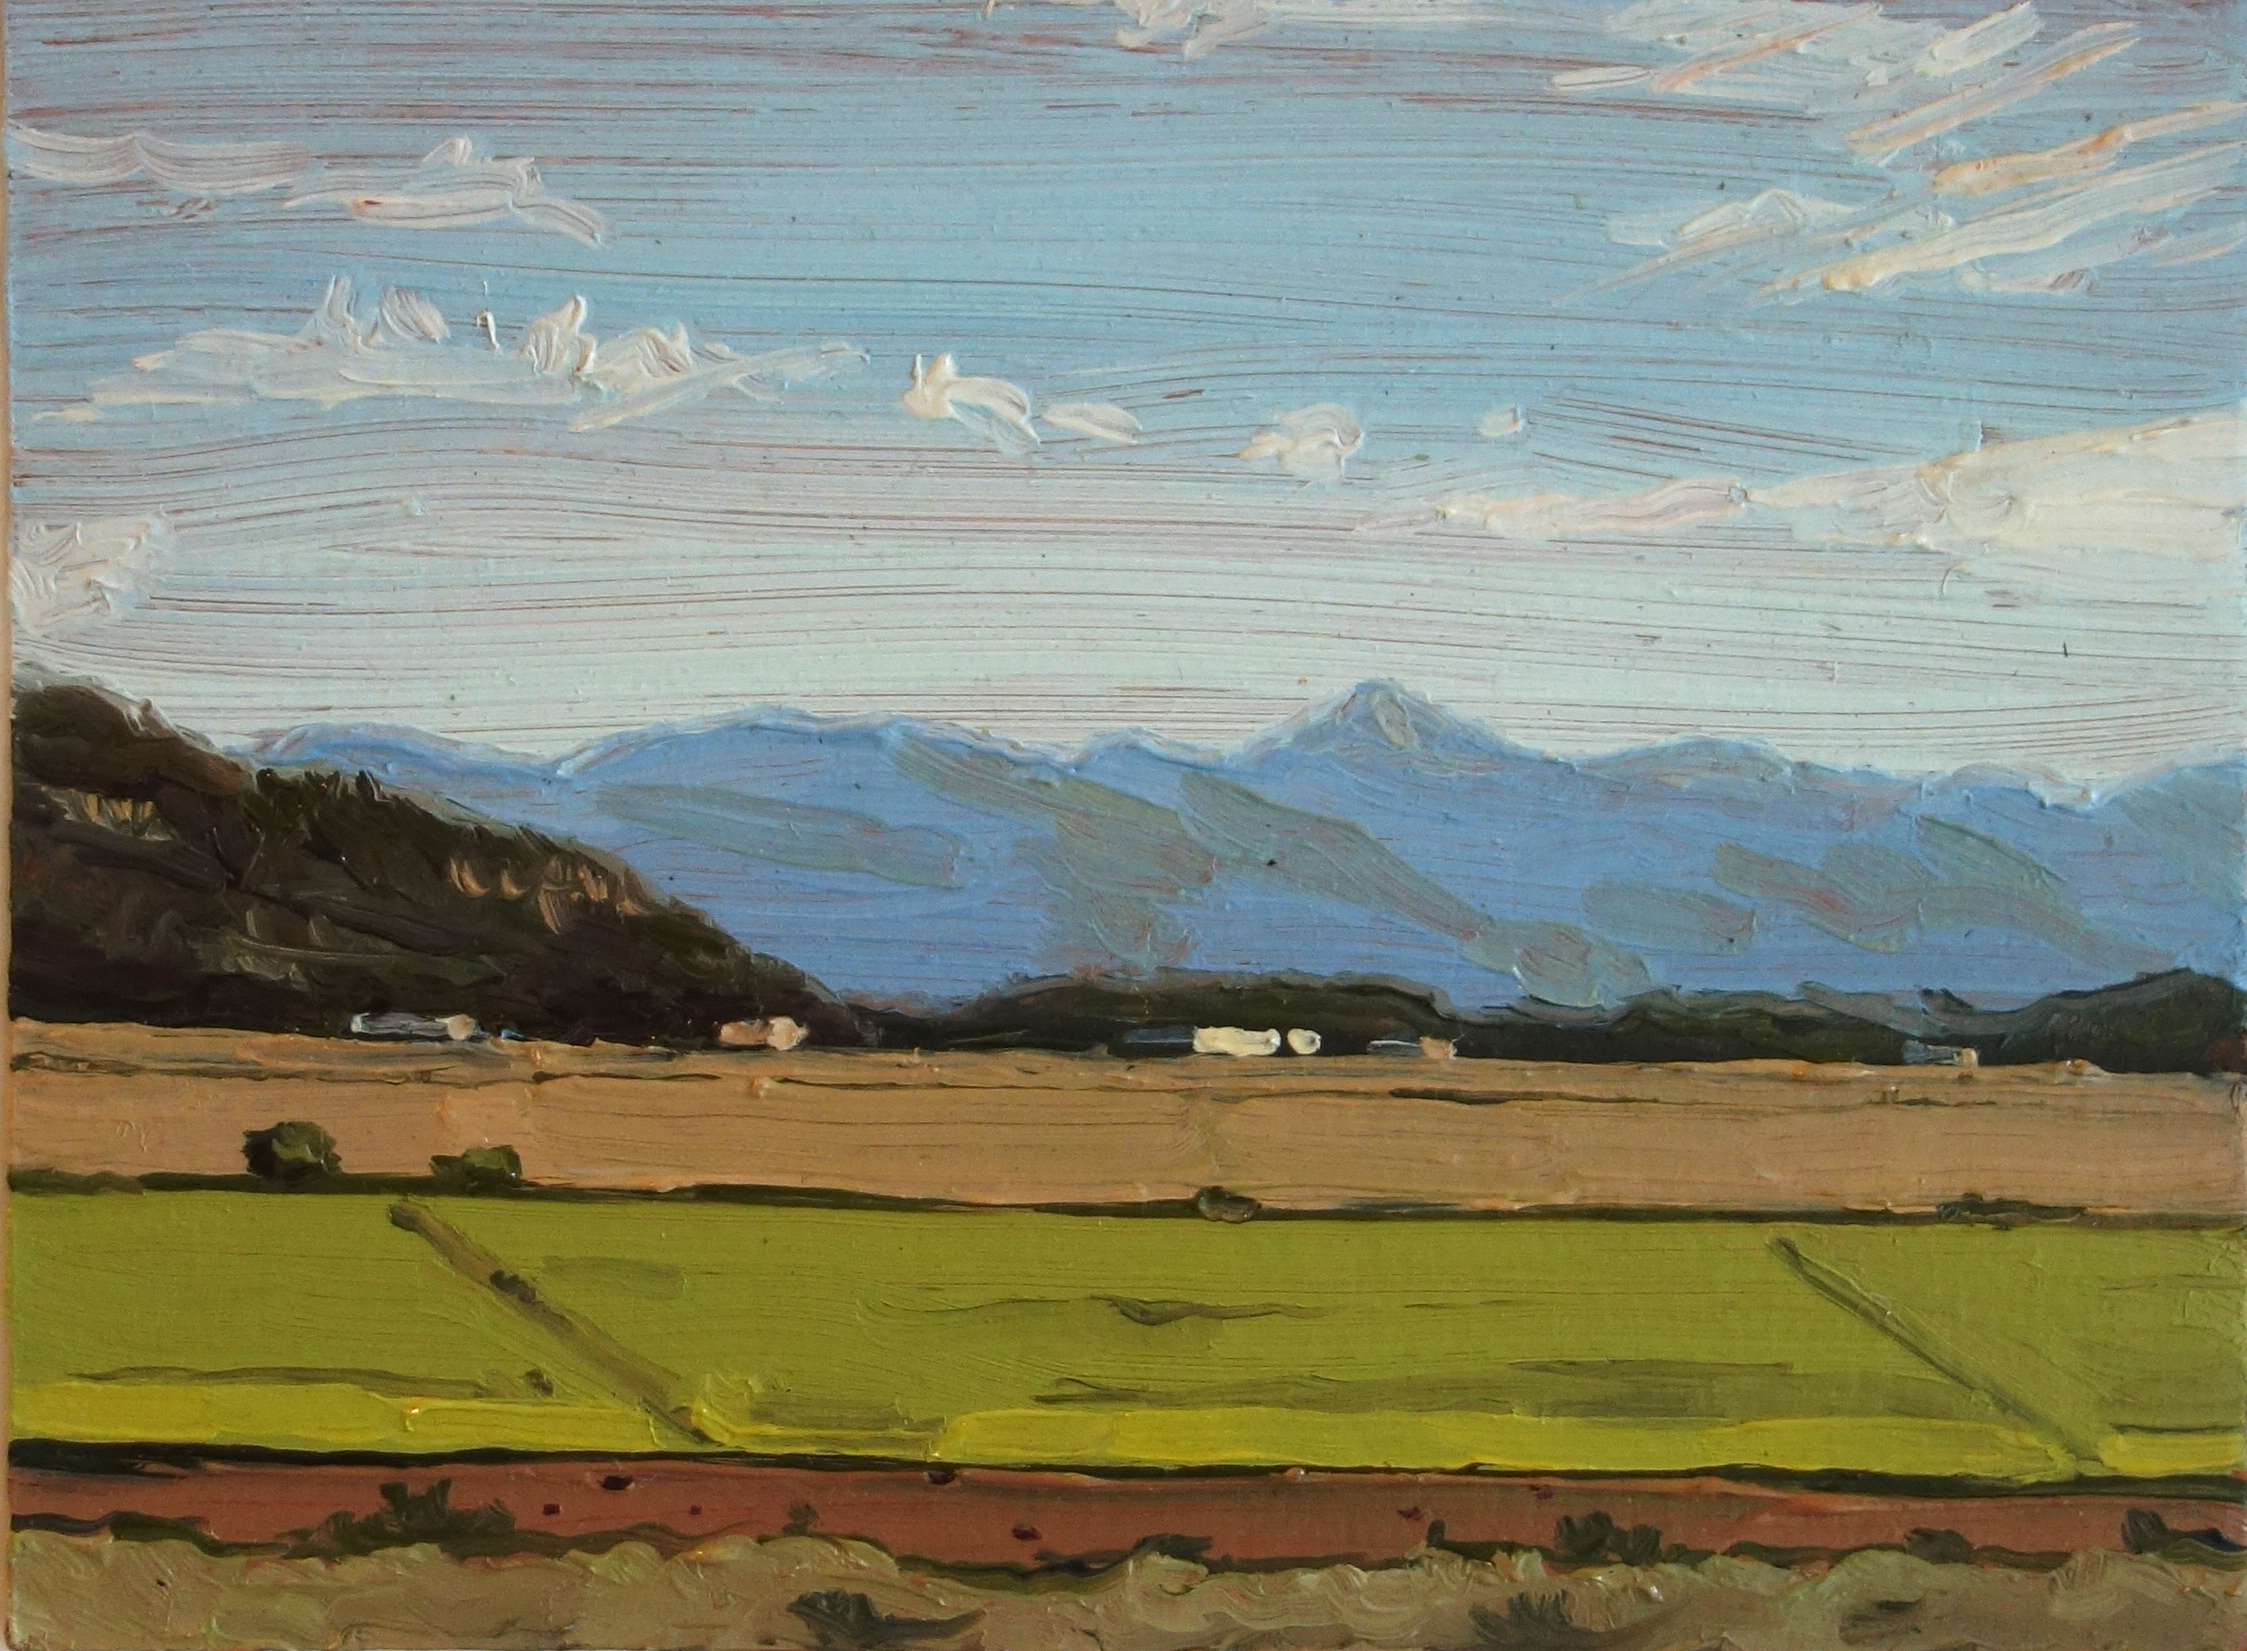 Driggs_Idaho_Fields_Oil_on_Paper_Painting_6x4.5_Maud_Taber_Thomas_Washington_DC_Georgetown